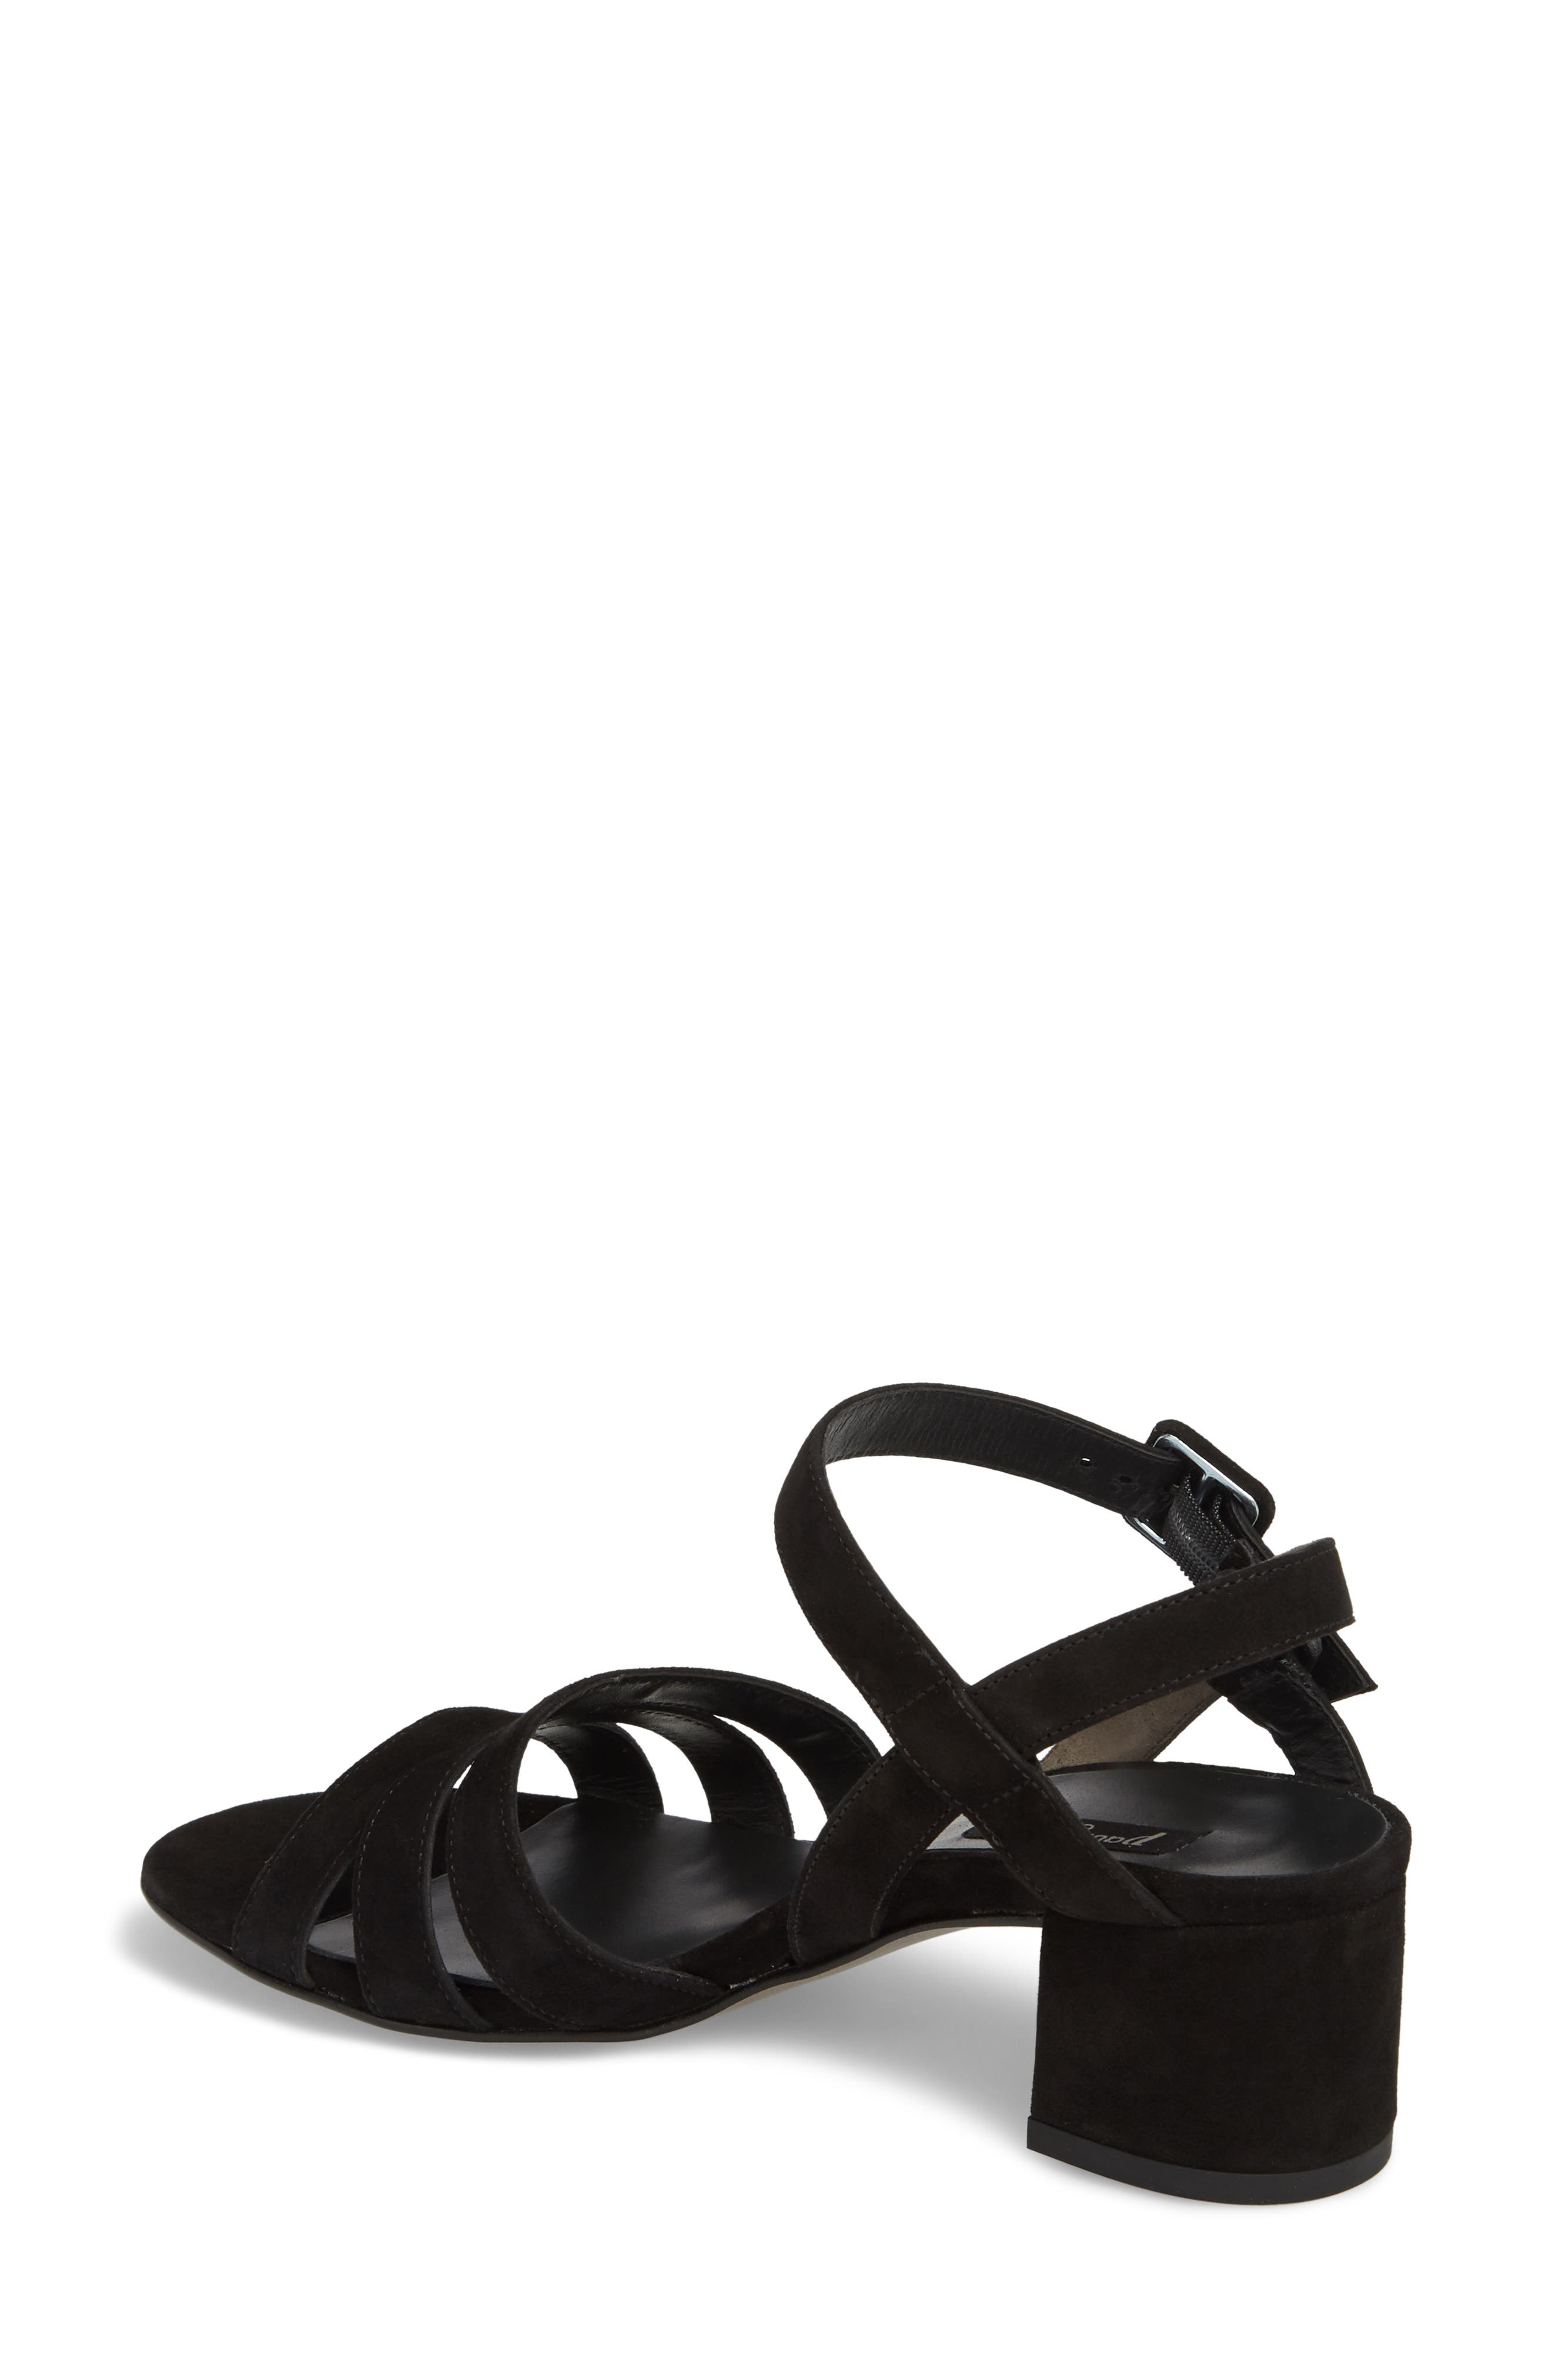 Rosemary Sandal,                             Alternate thumbnail 2, color,                             Black Suede